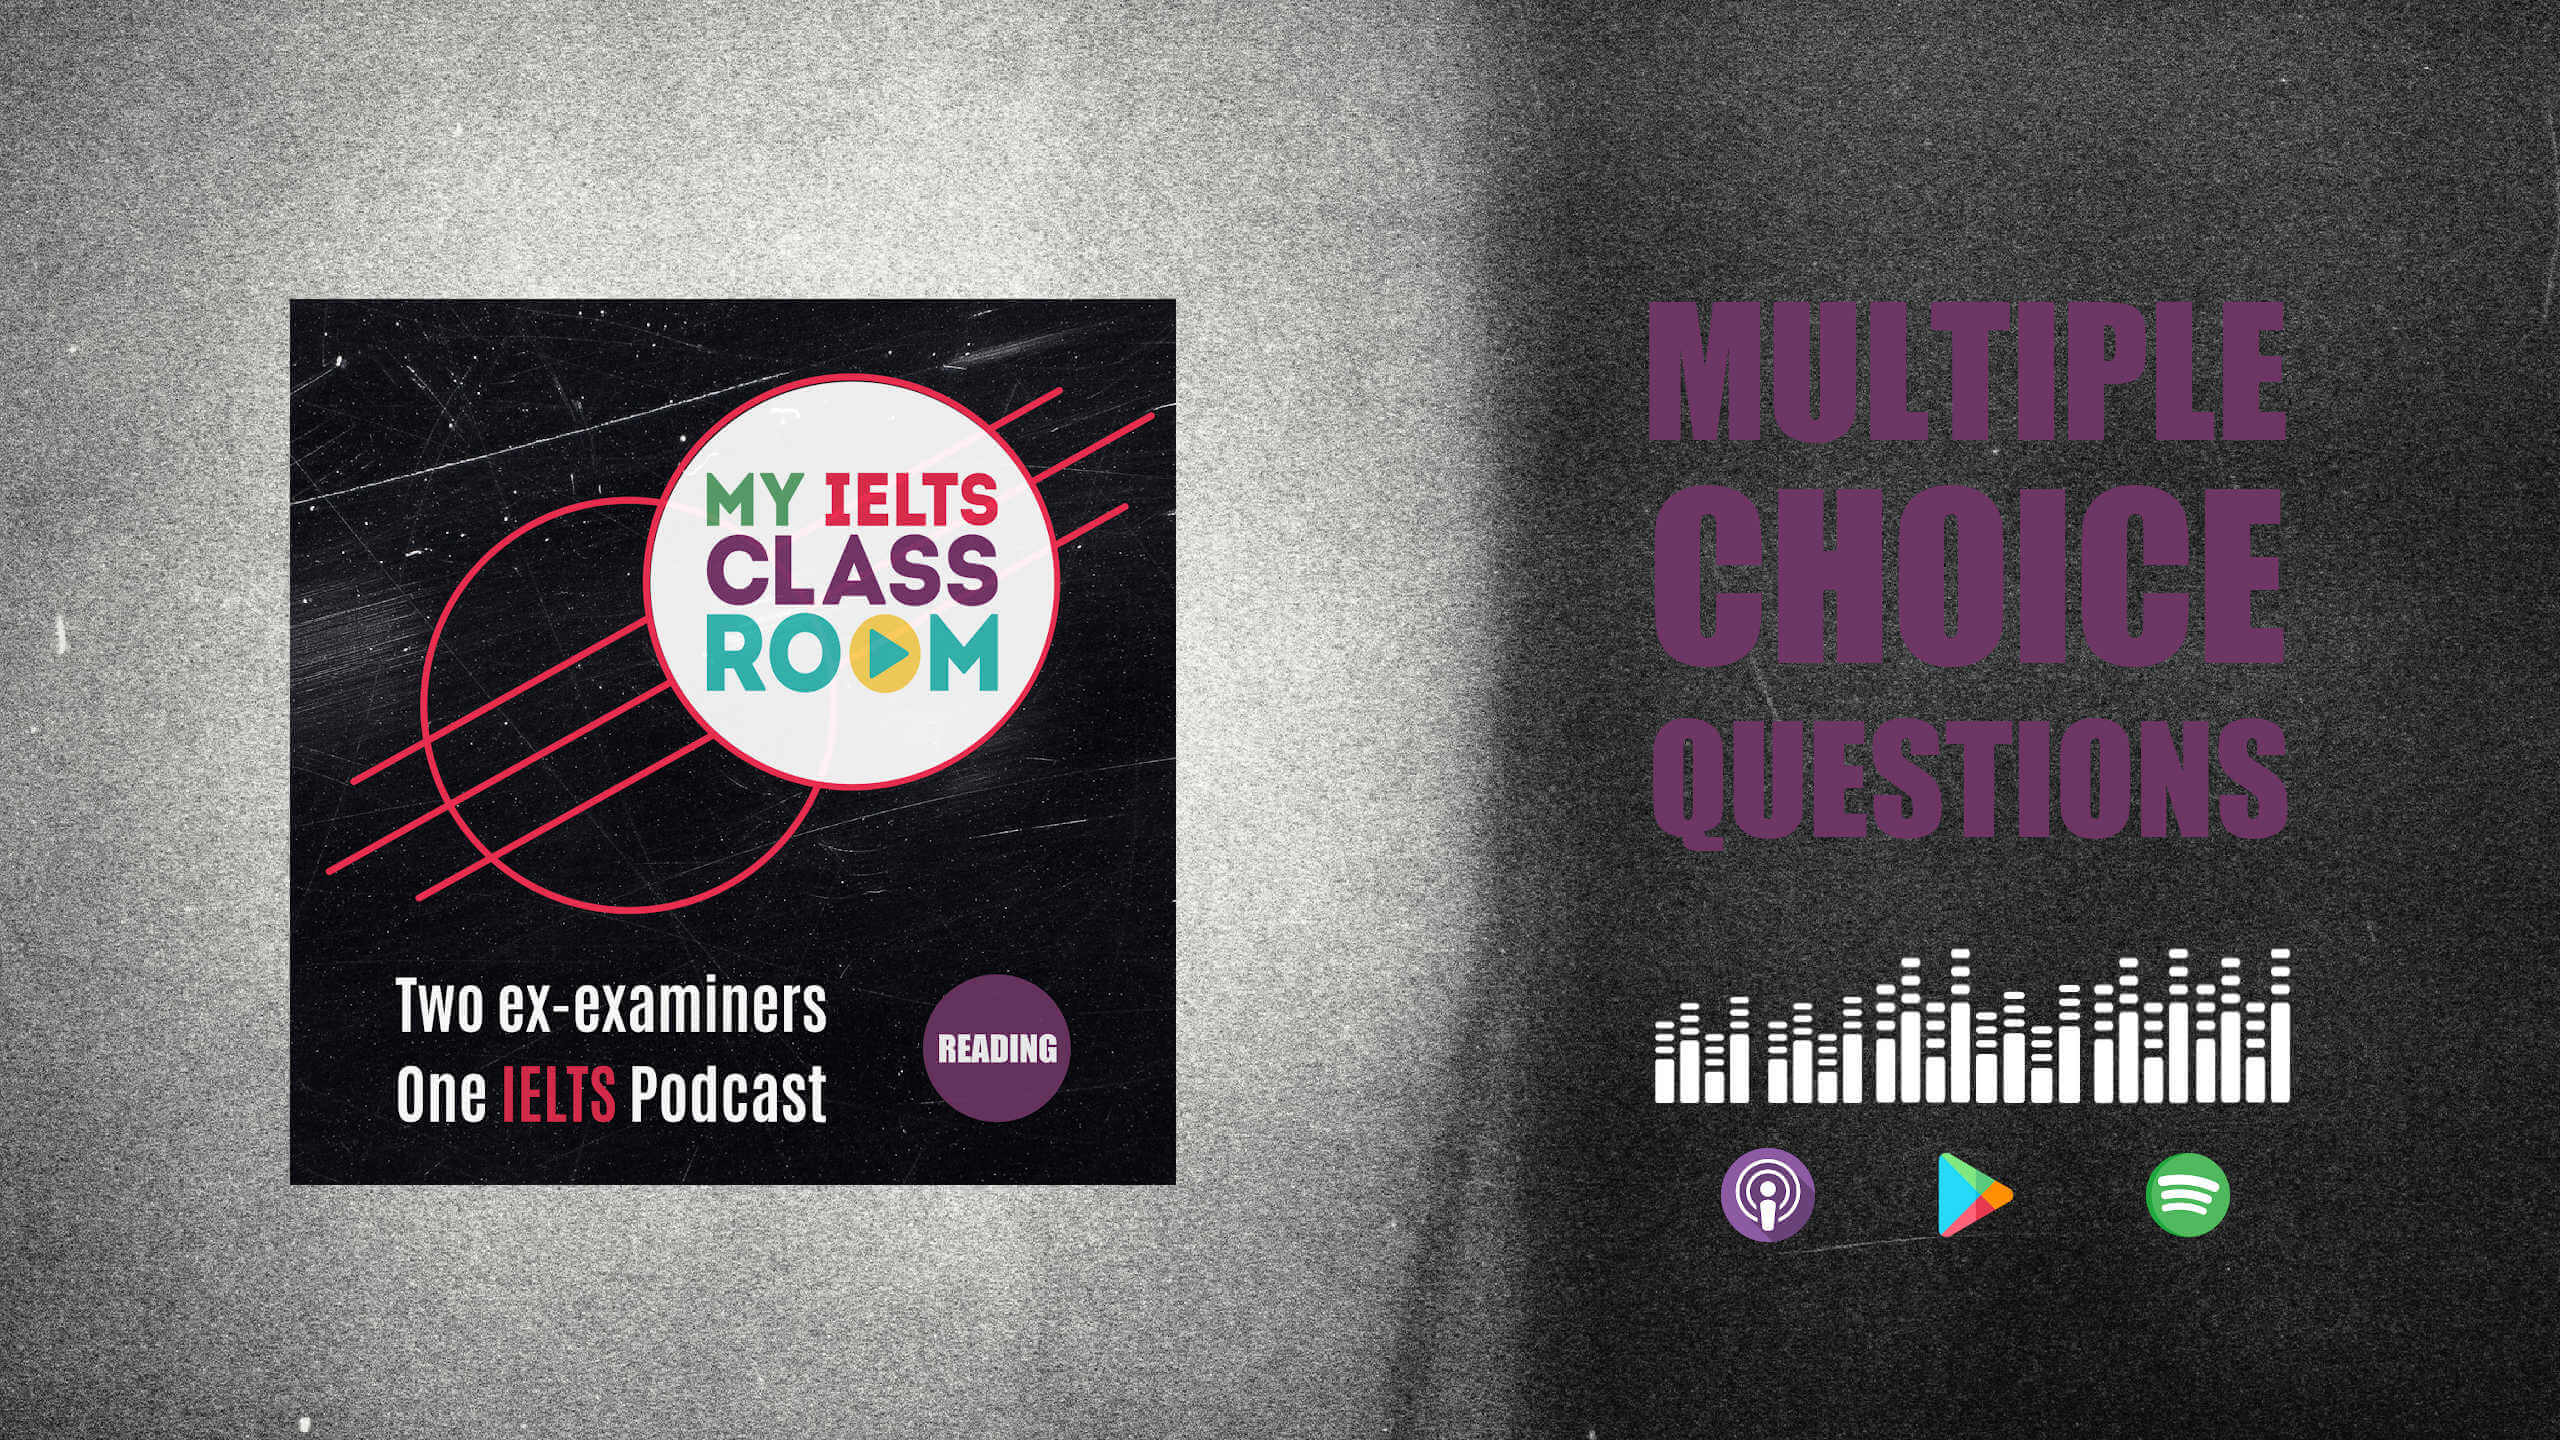 The words IELTS readingmultiple choice questions sit next to the My IELTS Classroom podcast logo